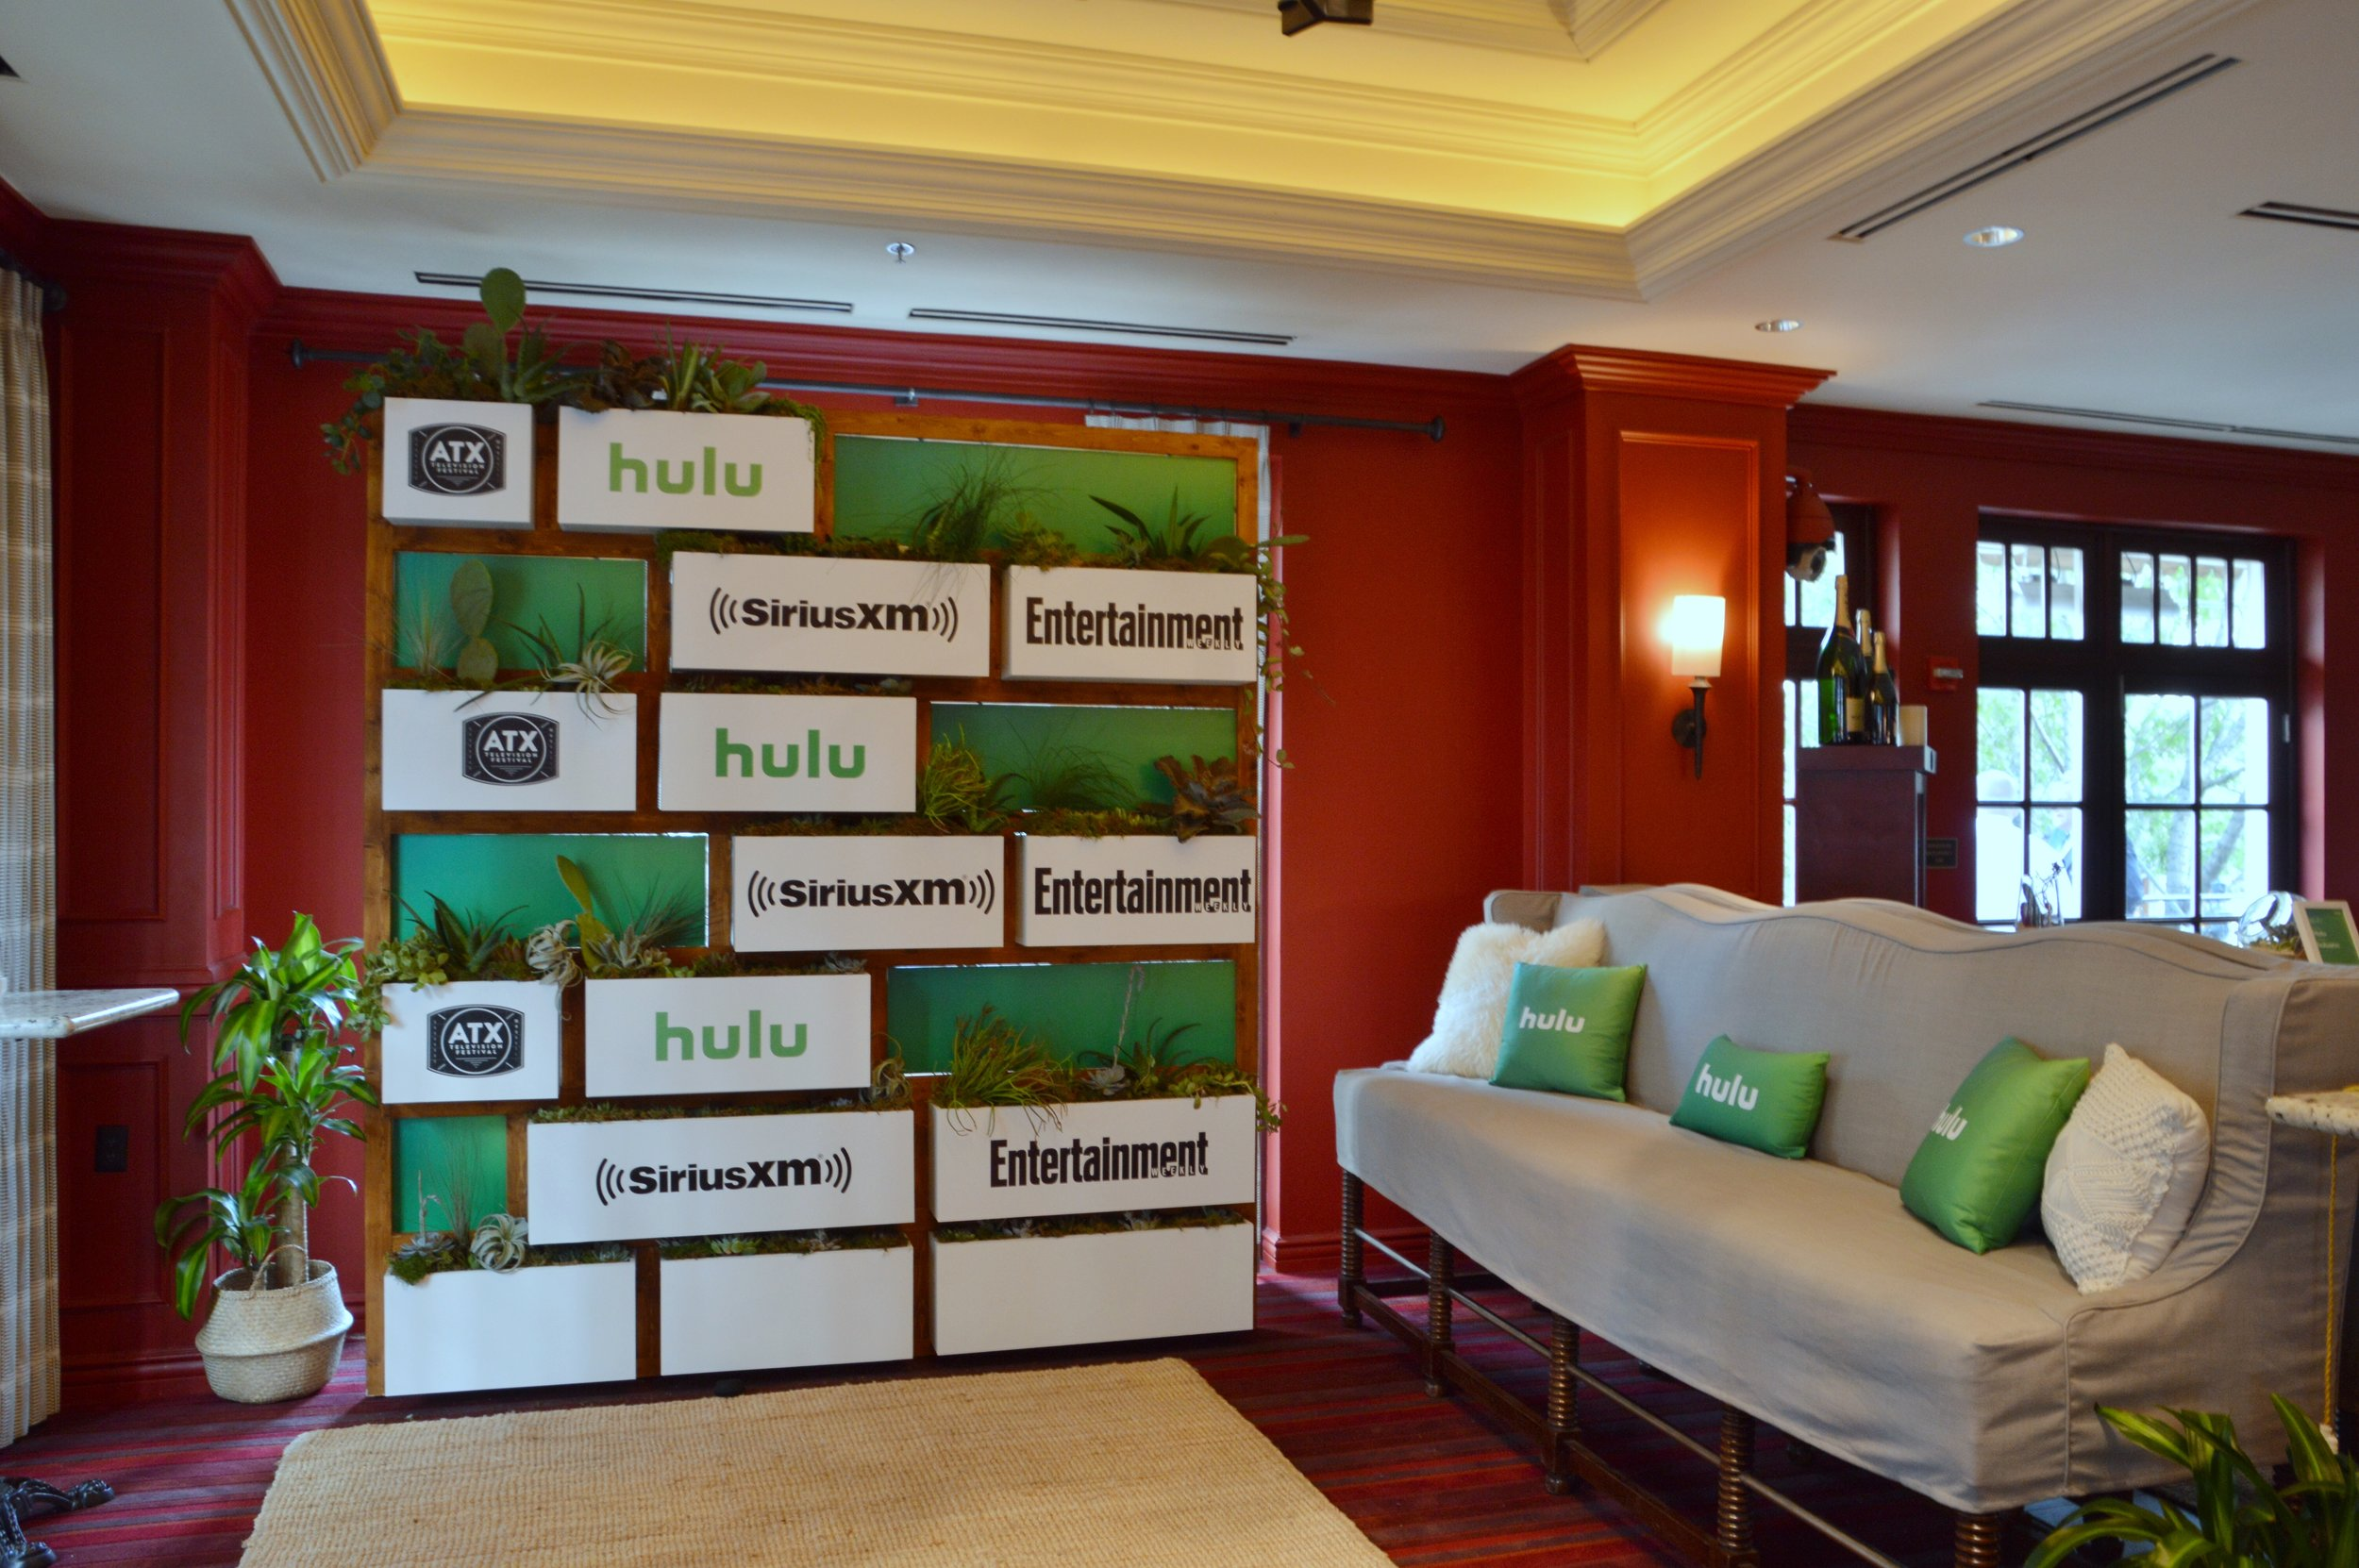 Hulu Lounge at the ATX Television Festival. Custom built step and repeat with real plants.